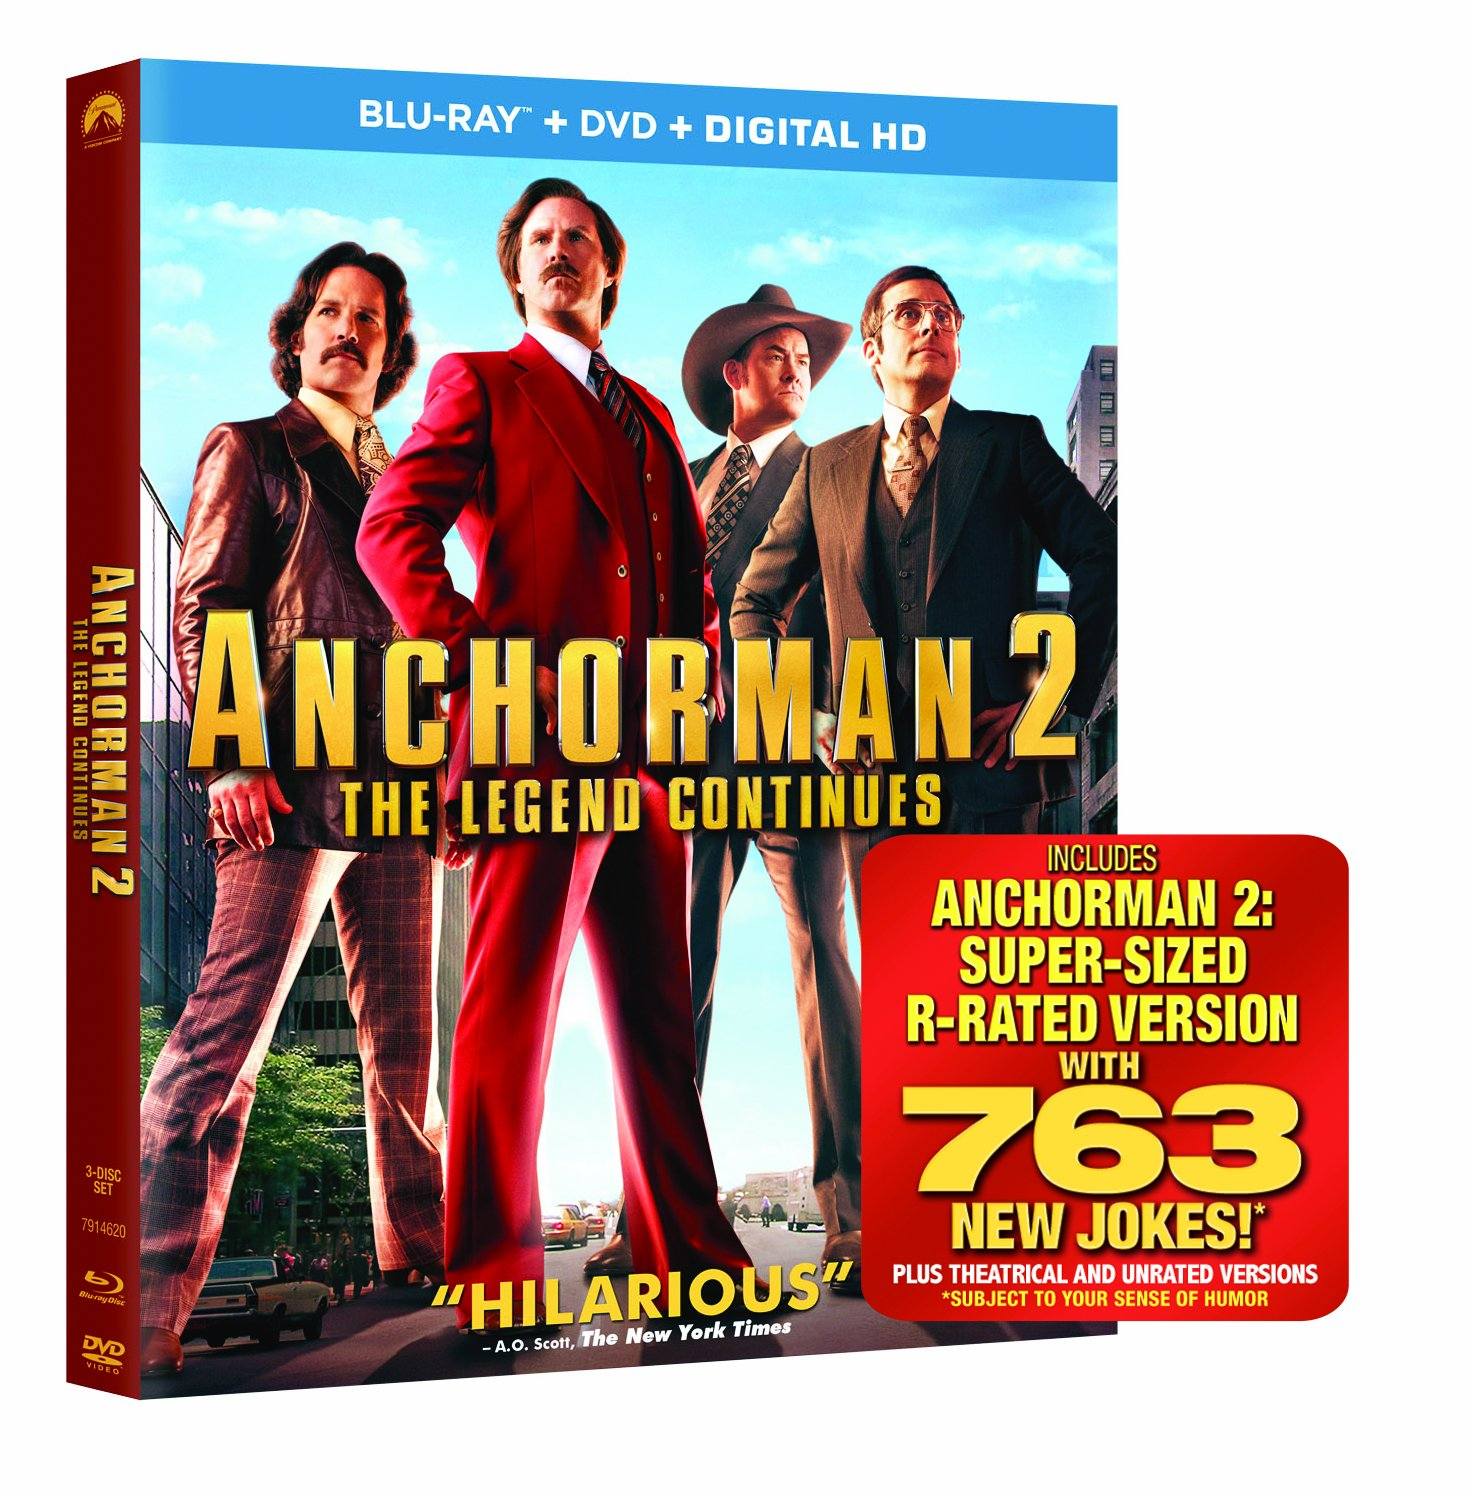 Anchorman 2: The Legend Continues